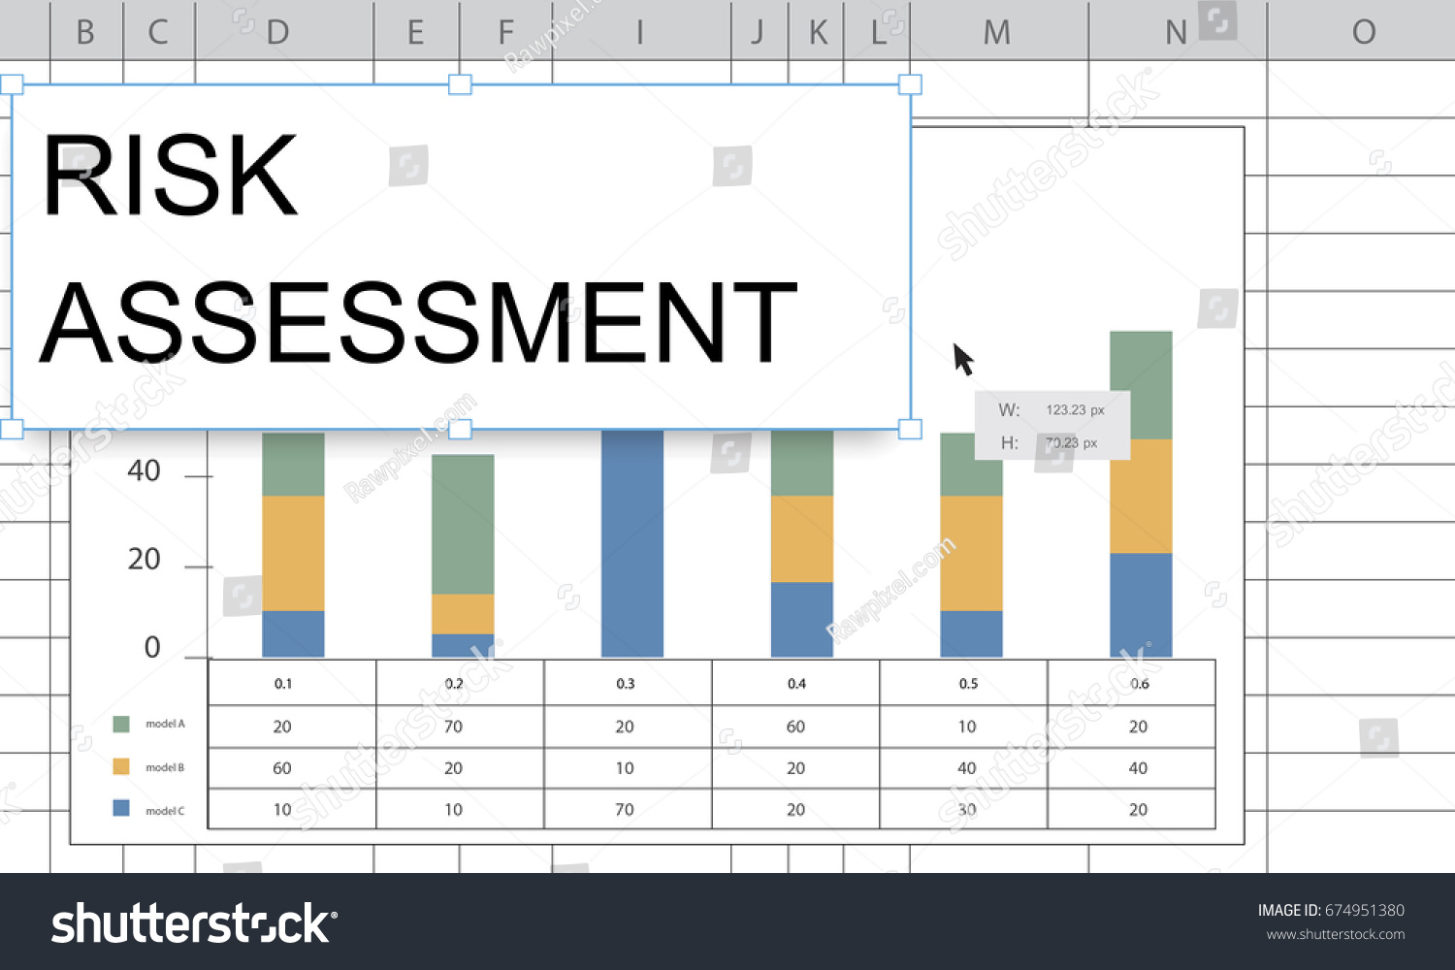 Spreadsheet Chart Spreadshee Spreadsheet Charts Tutorial Spreadsheet Chart Types